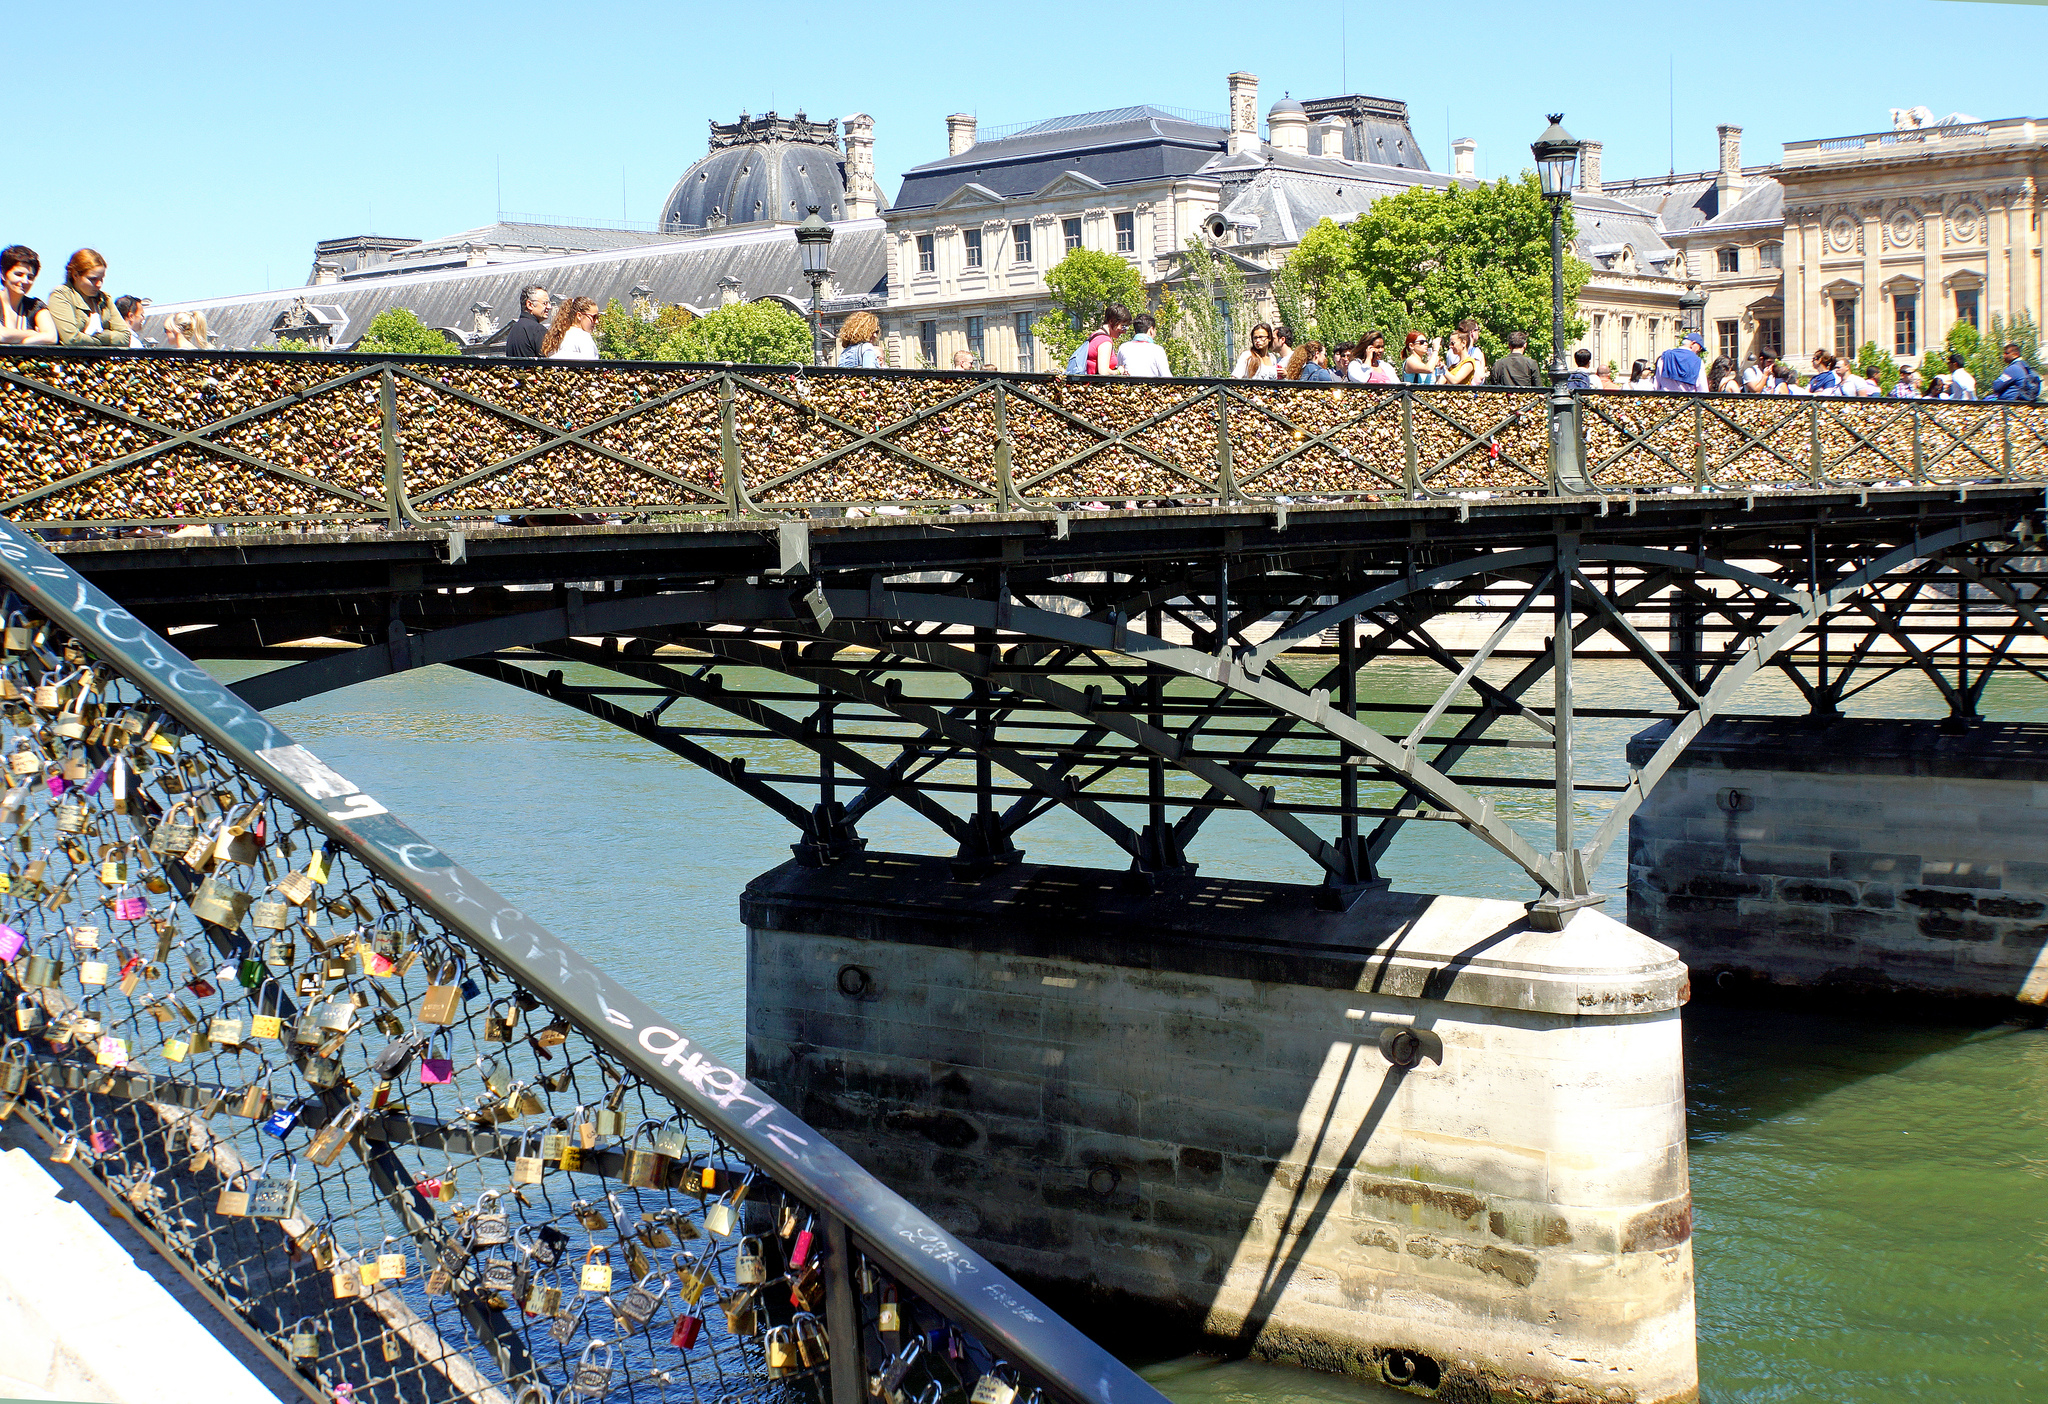 Featuring Love Lock Bridge in Paris, France is one of the better European countries for an overland trip ... photo by CC user archer10 on Flickr